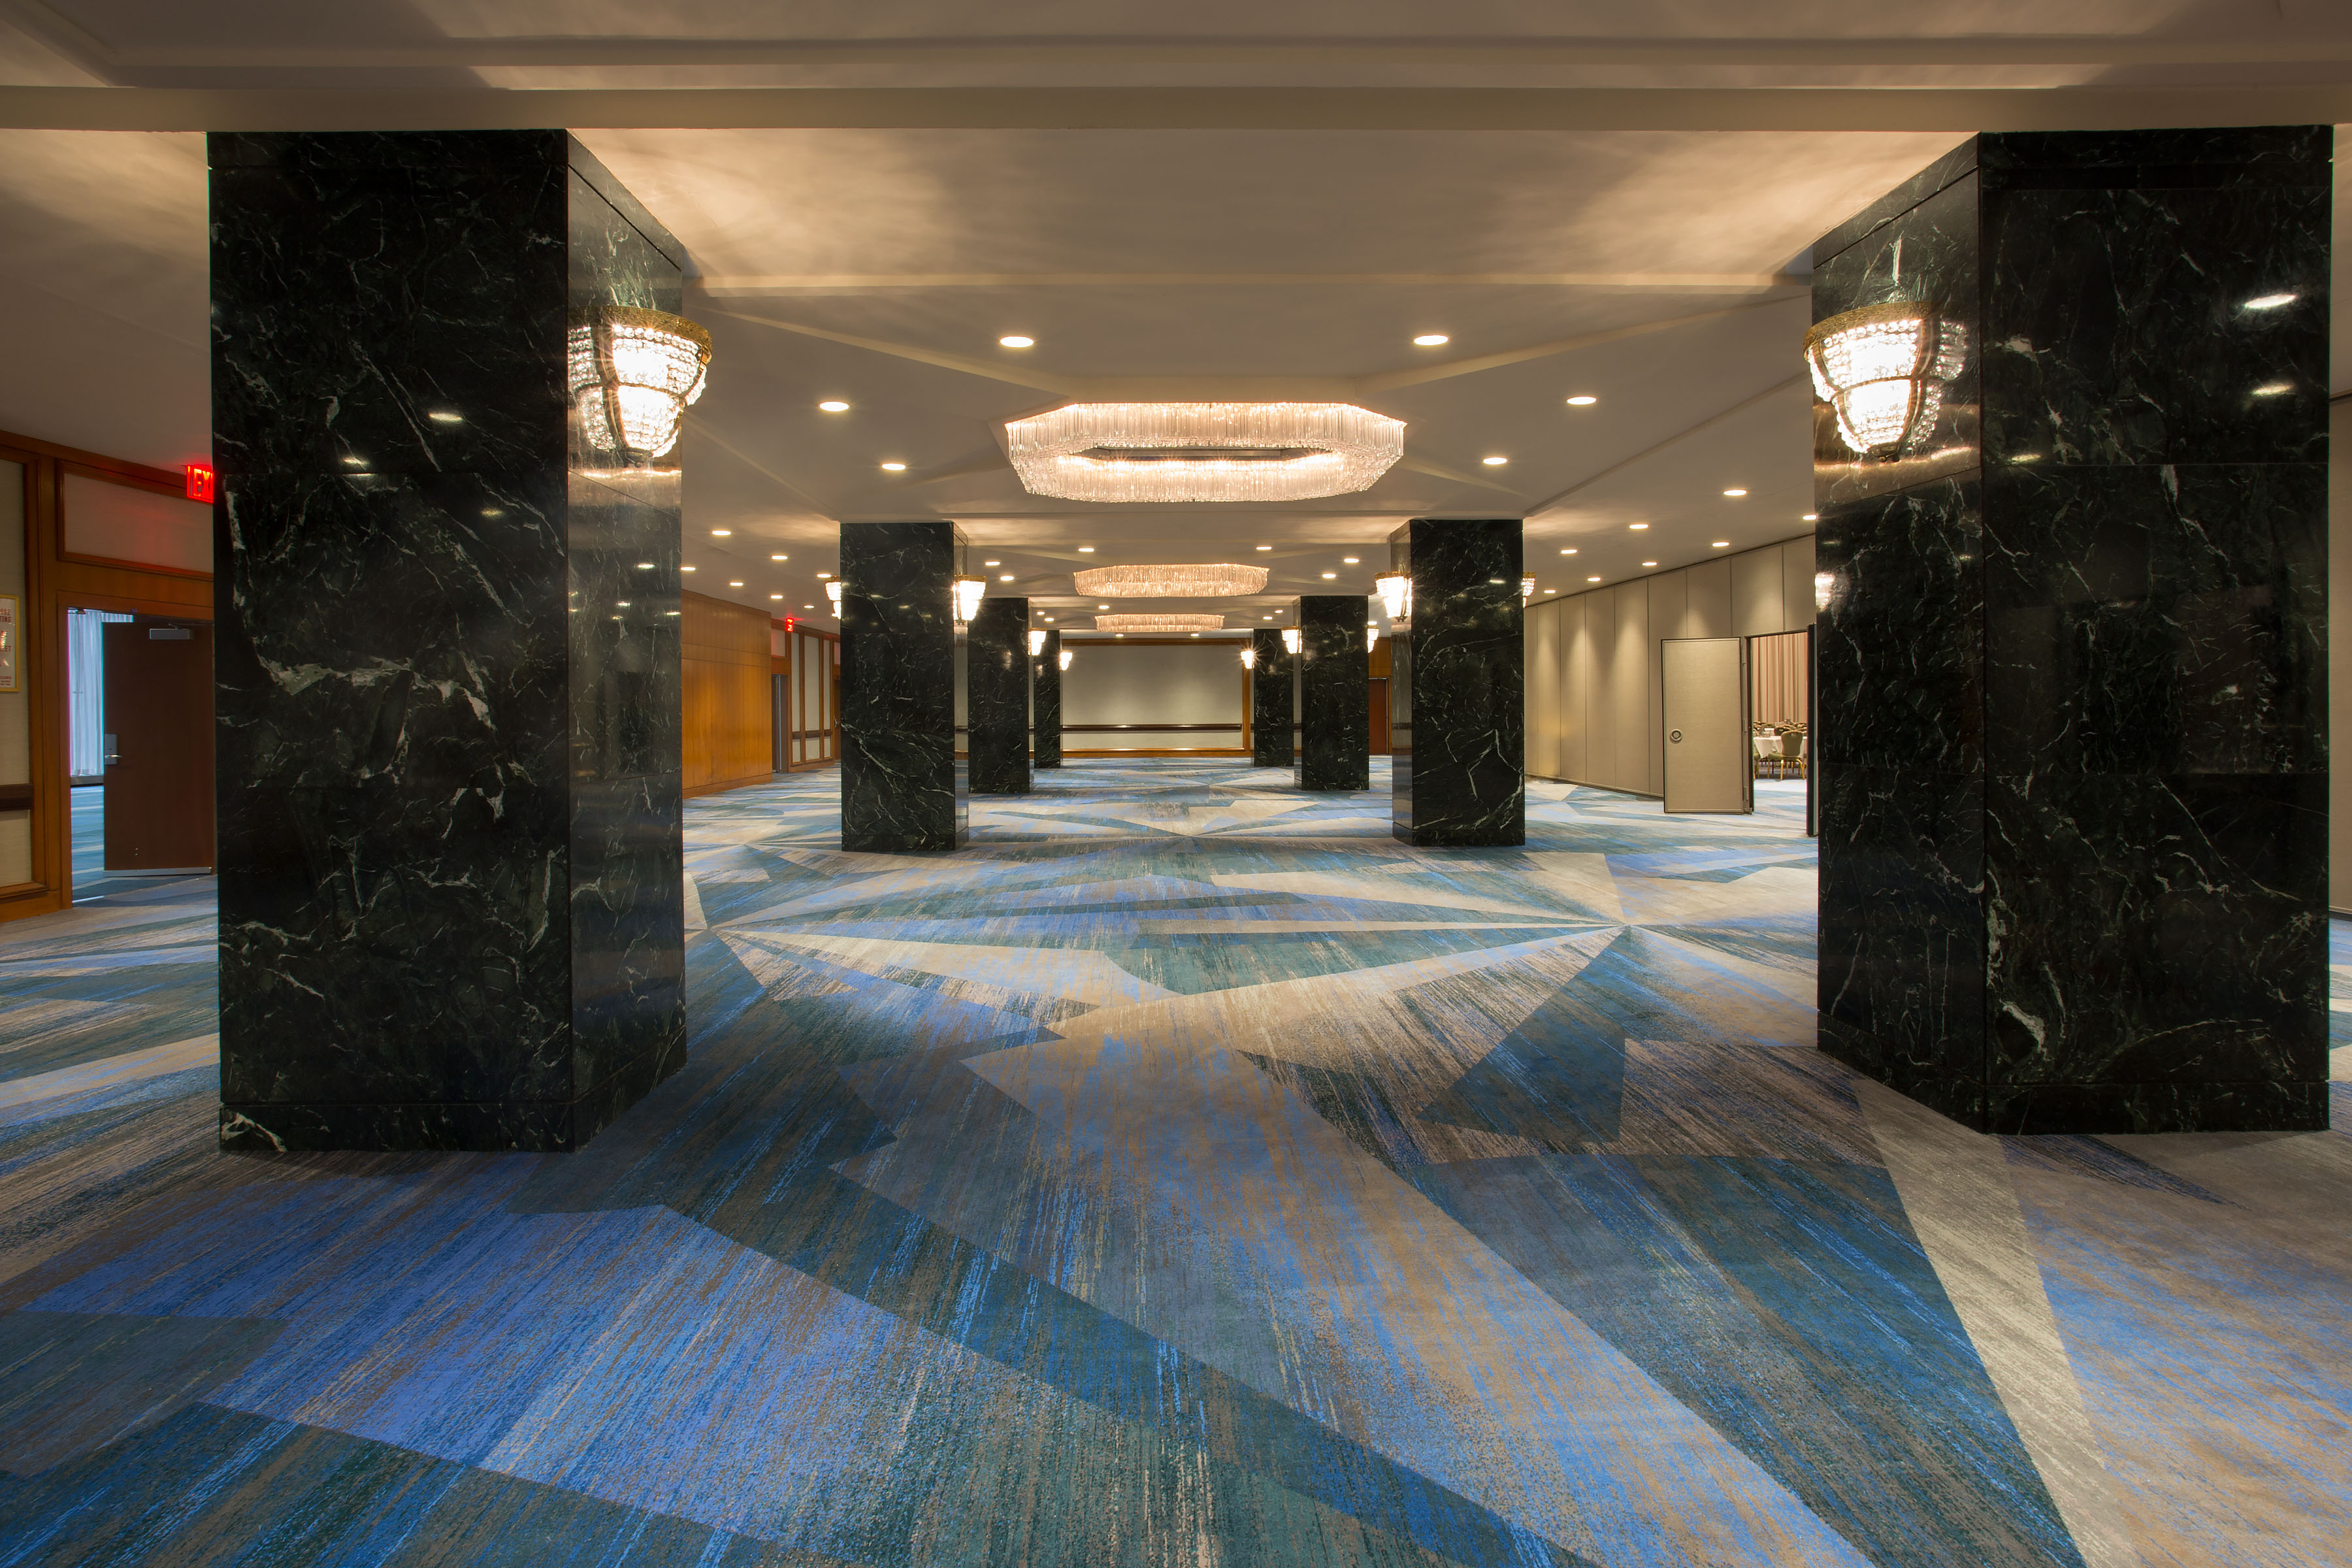 The aston baker cutting edge 2018 hotel we are very excited to announce the aston baker cutting edge aesthetic surgery symposium will be held november 29 december 1 2018 at the new york hilton sciox Images